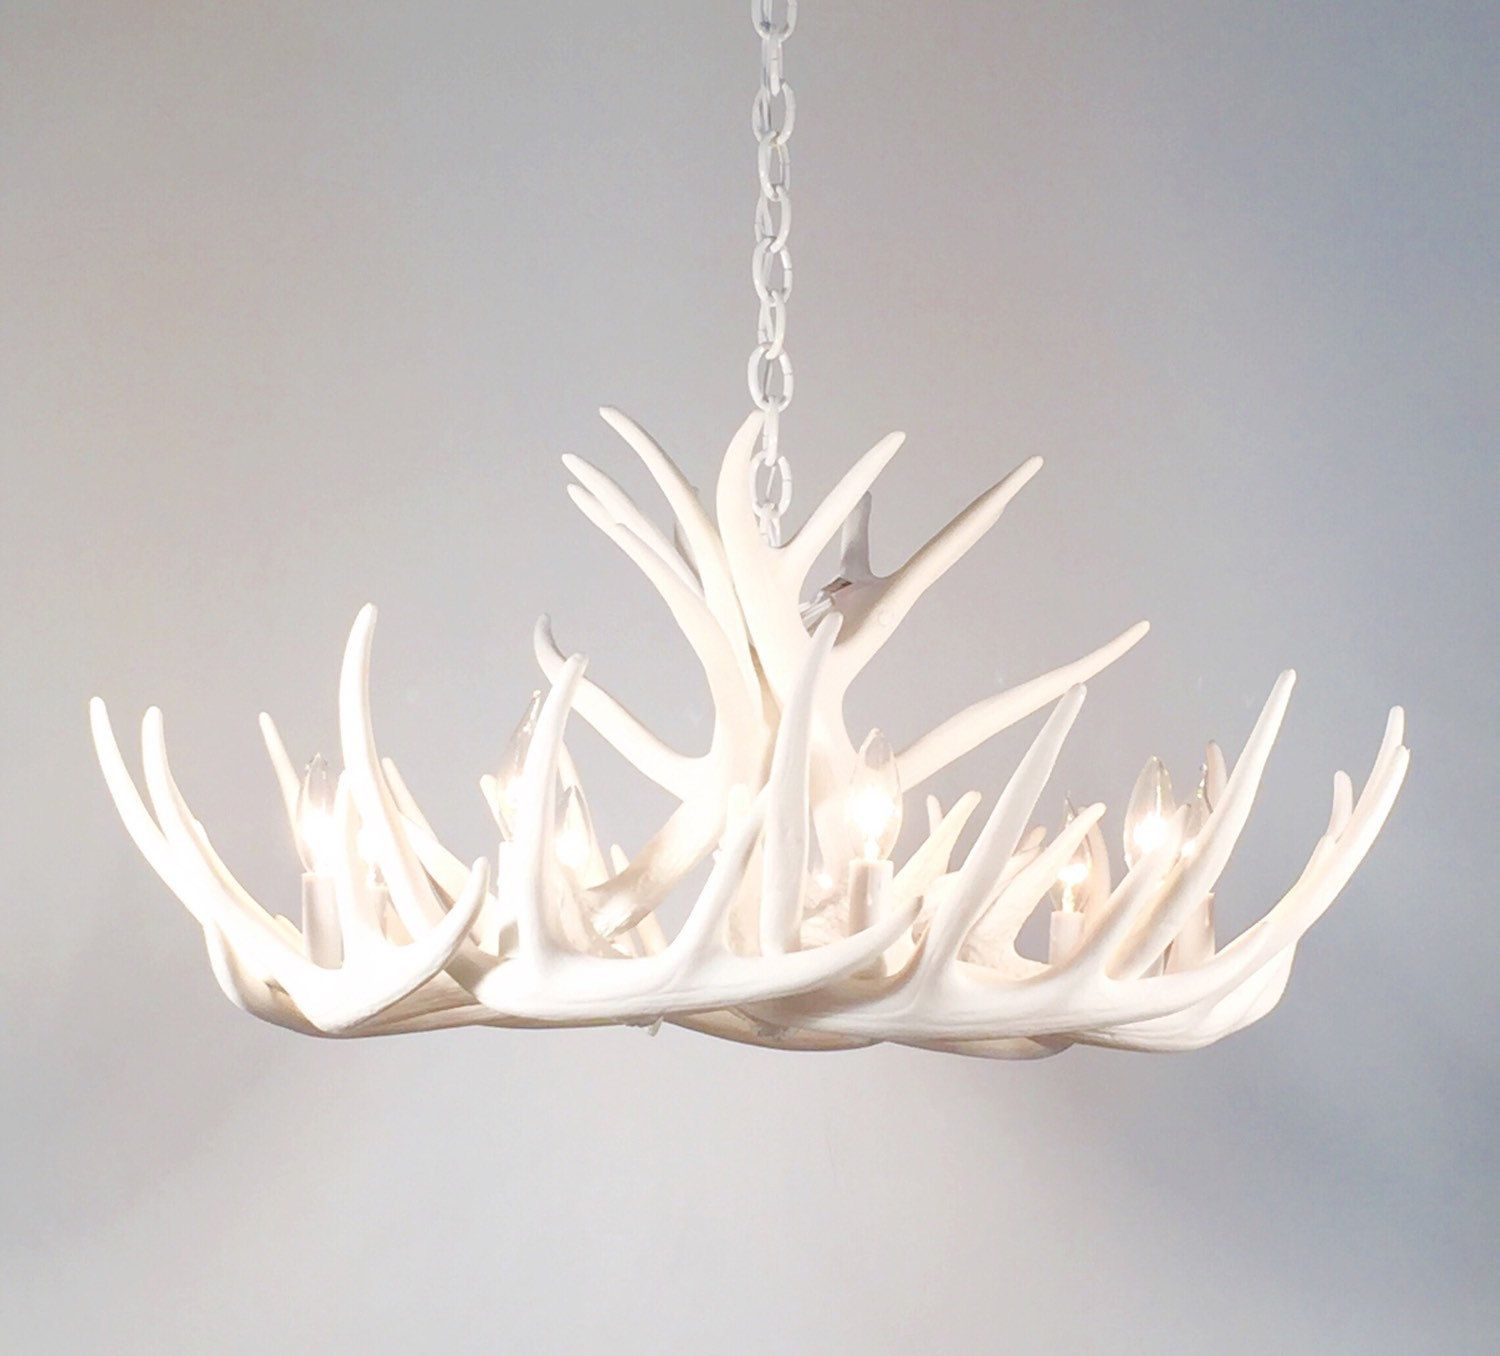 This is an all white antler chandelier made with faux reproduction